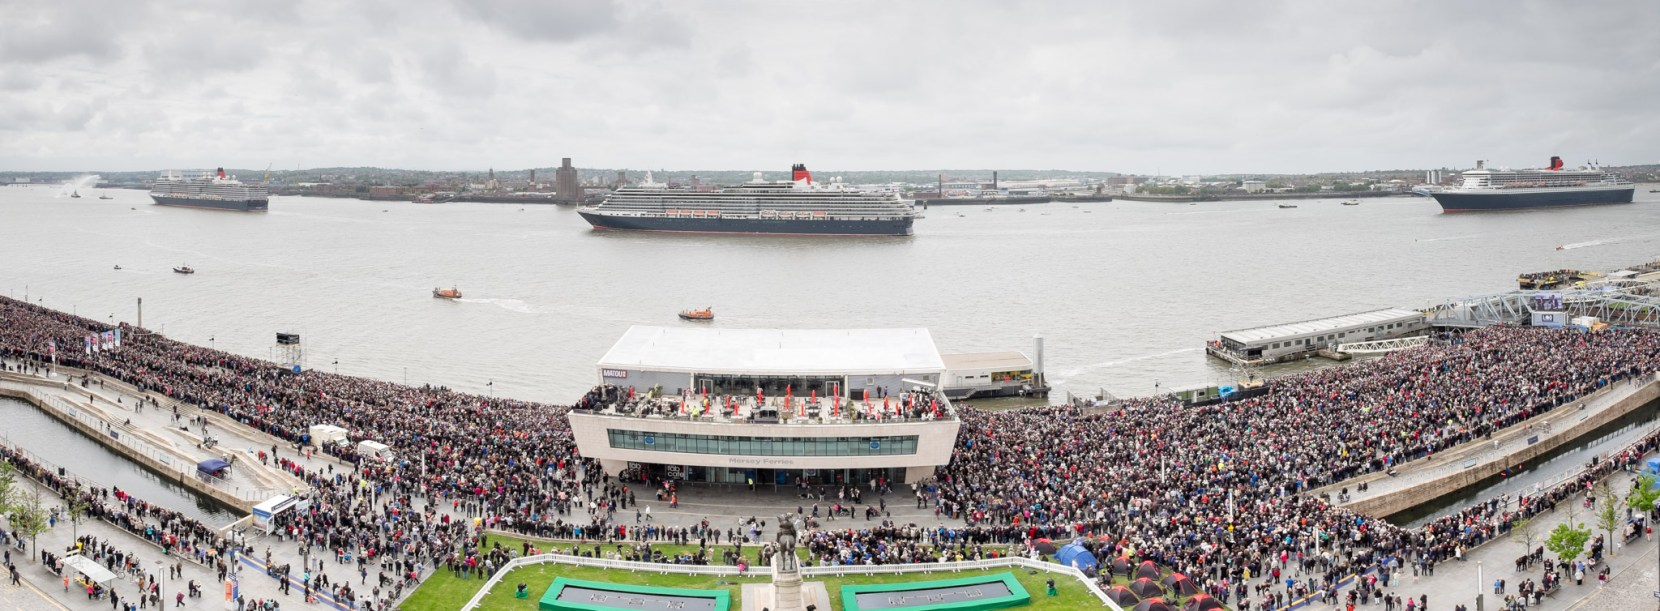 3Queens-Monday-pano1-pete-carr